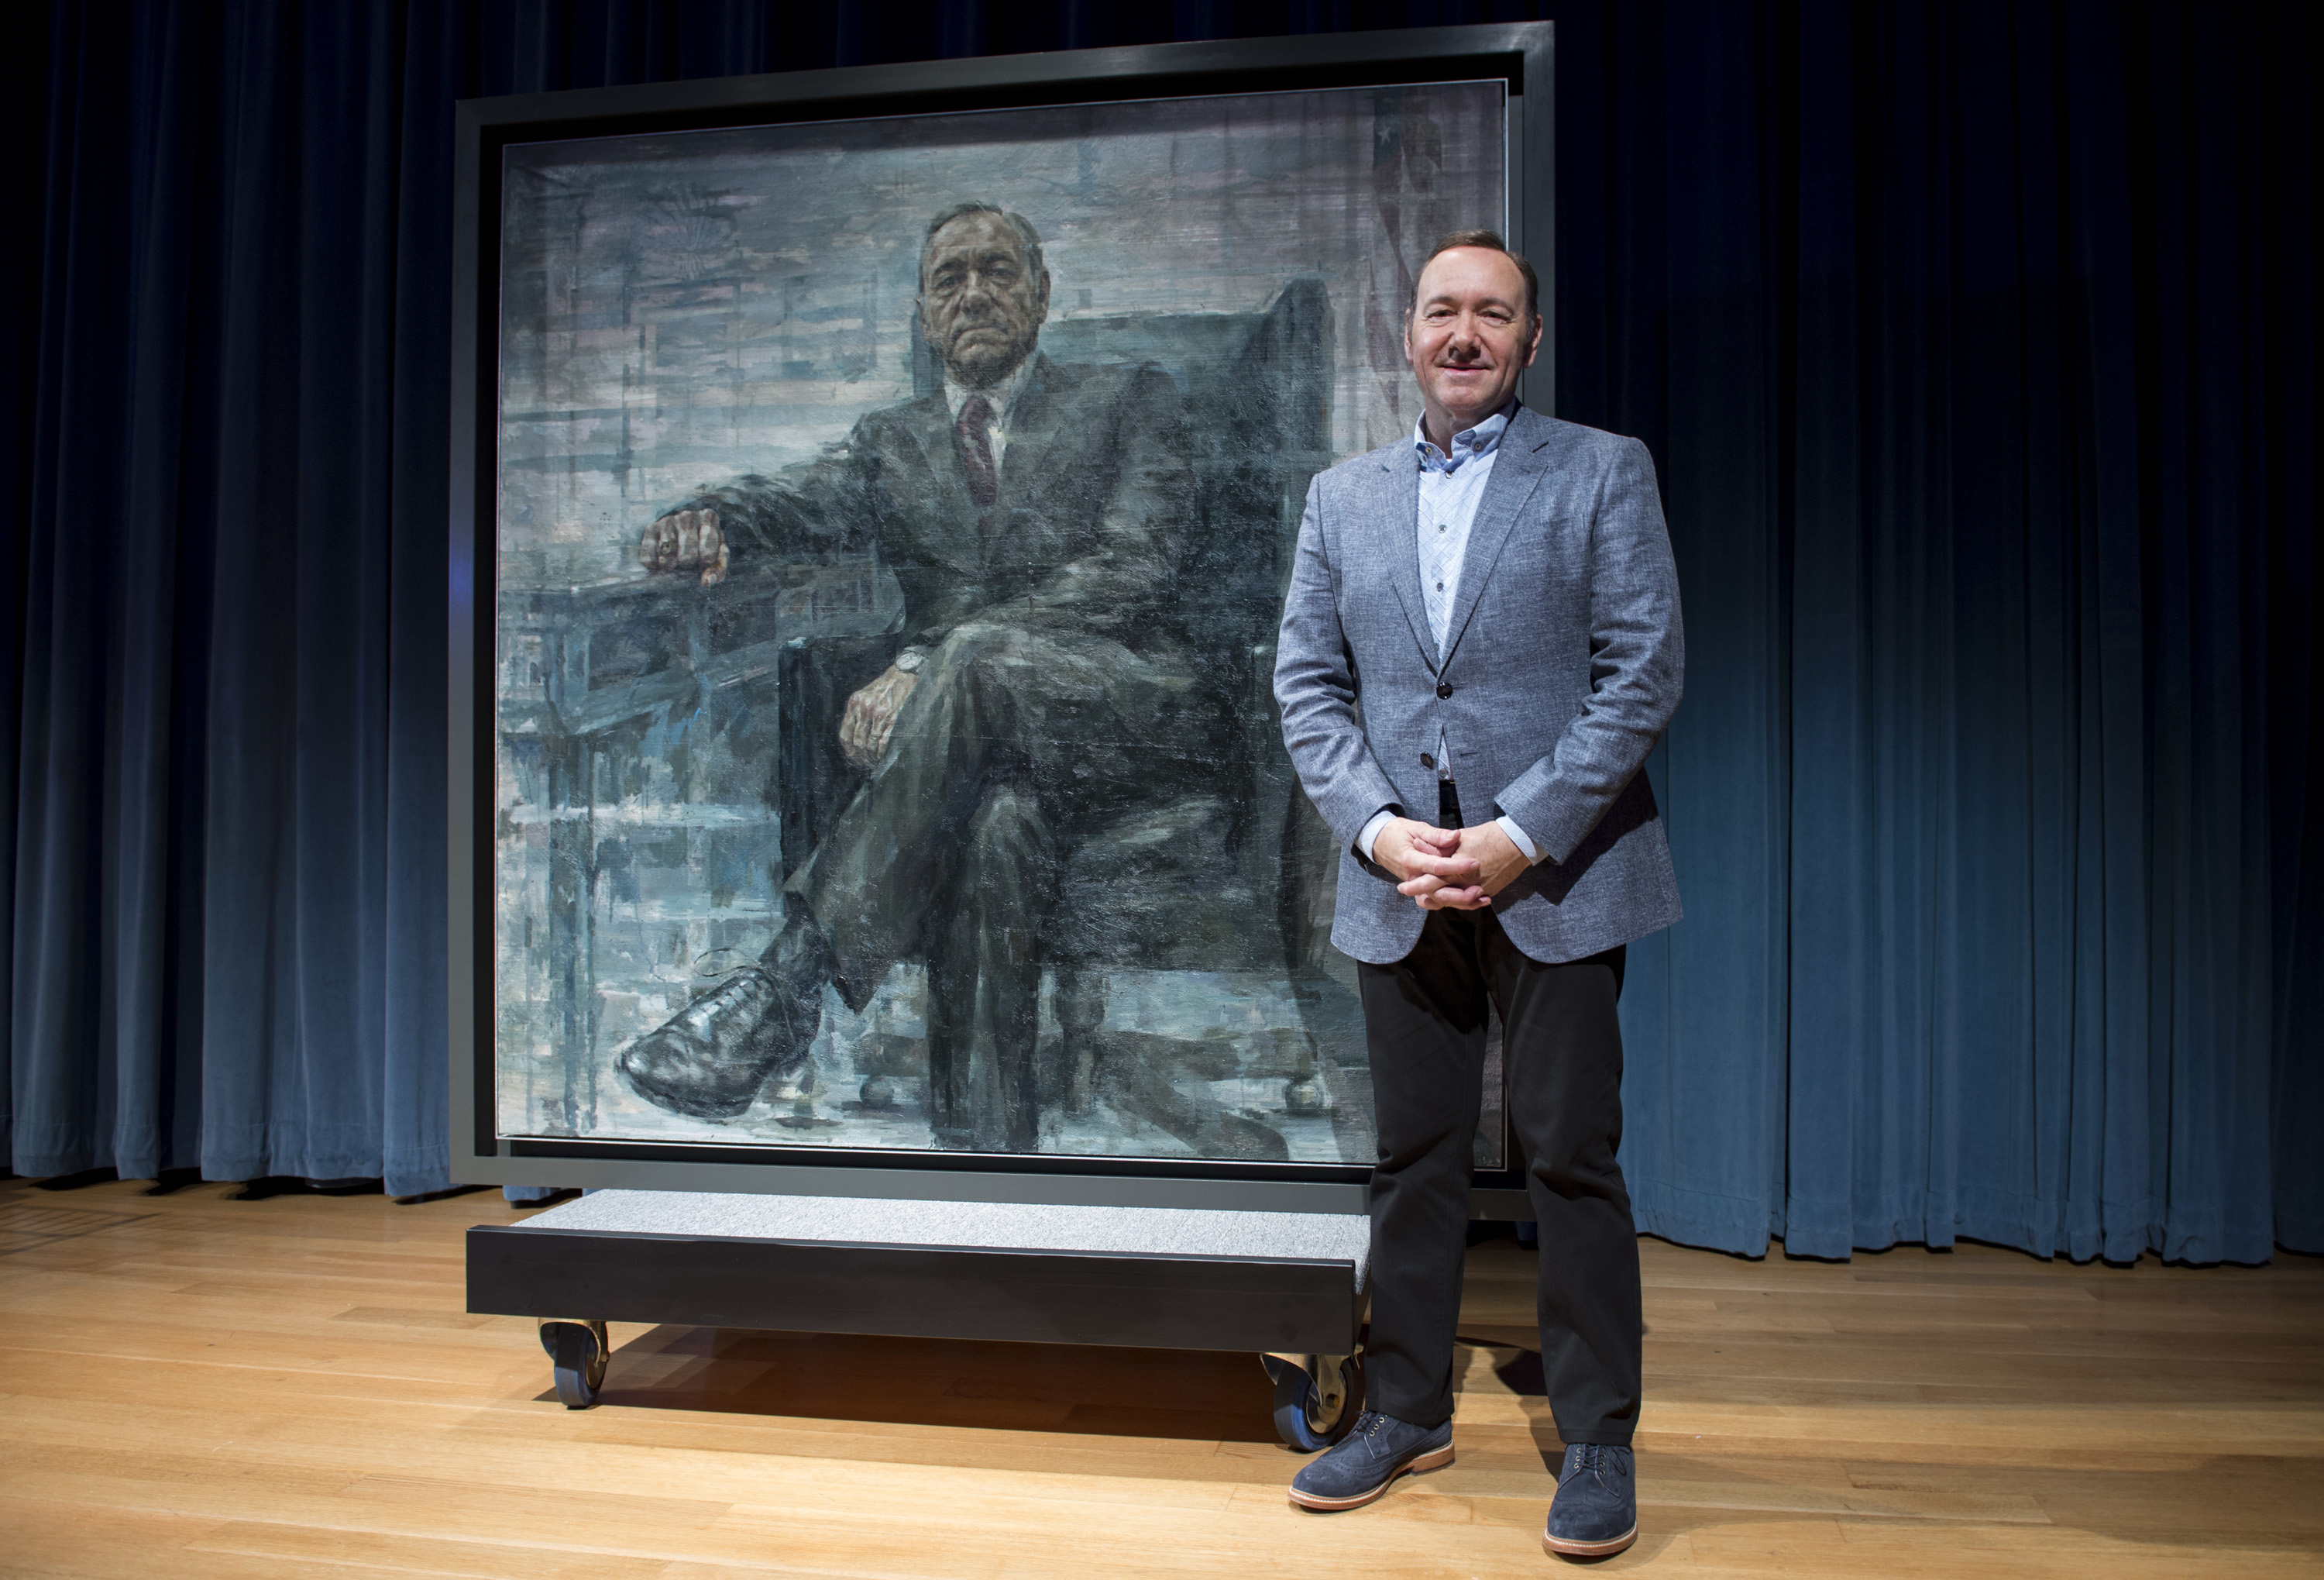 WASHINGTON, DC - FEBRUARY 22: (EDITORS NOTE:This image has been digitally altered.) Kevin Spacey poses for a photo with a por